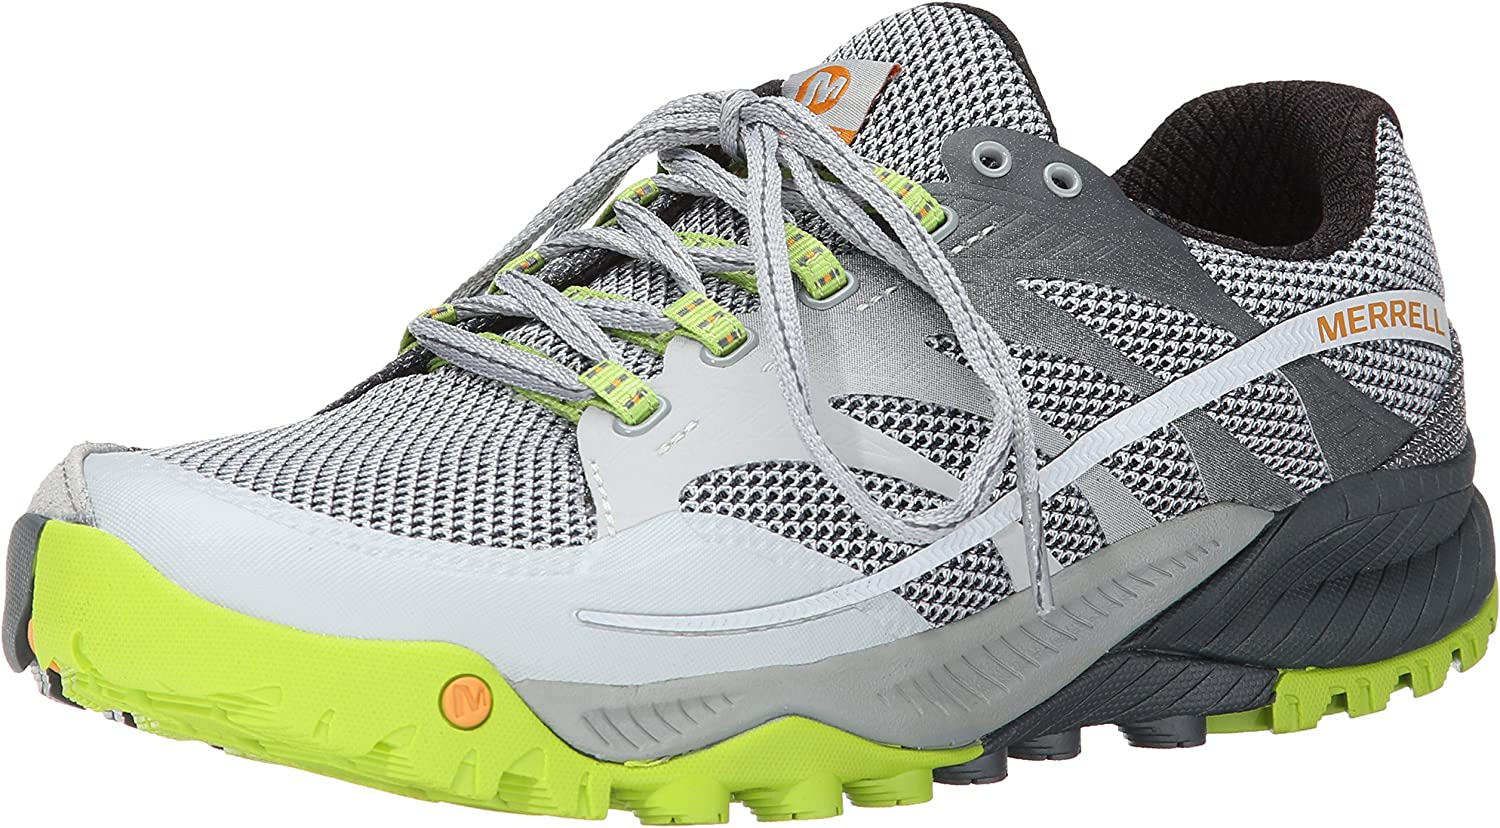 Merrell Men's All Out Charge Trail Running shoes, Grey Lime Green